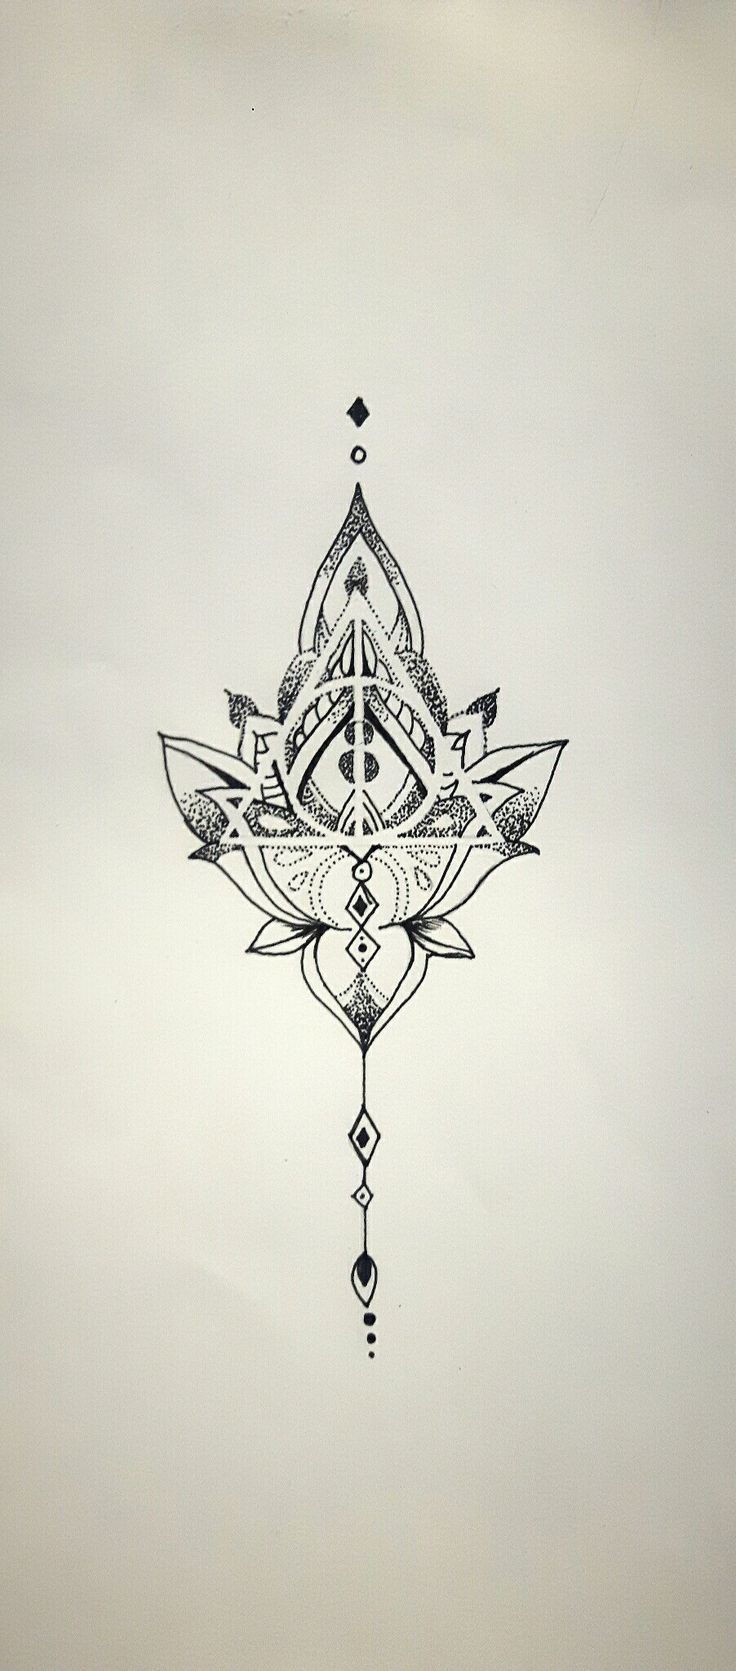 Mandala Deathly Hallows, tattoo idea. Own design Follow me on Insta @wlmscyn